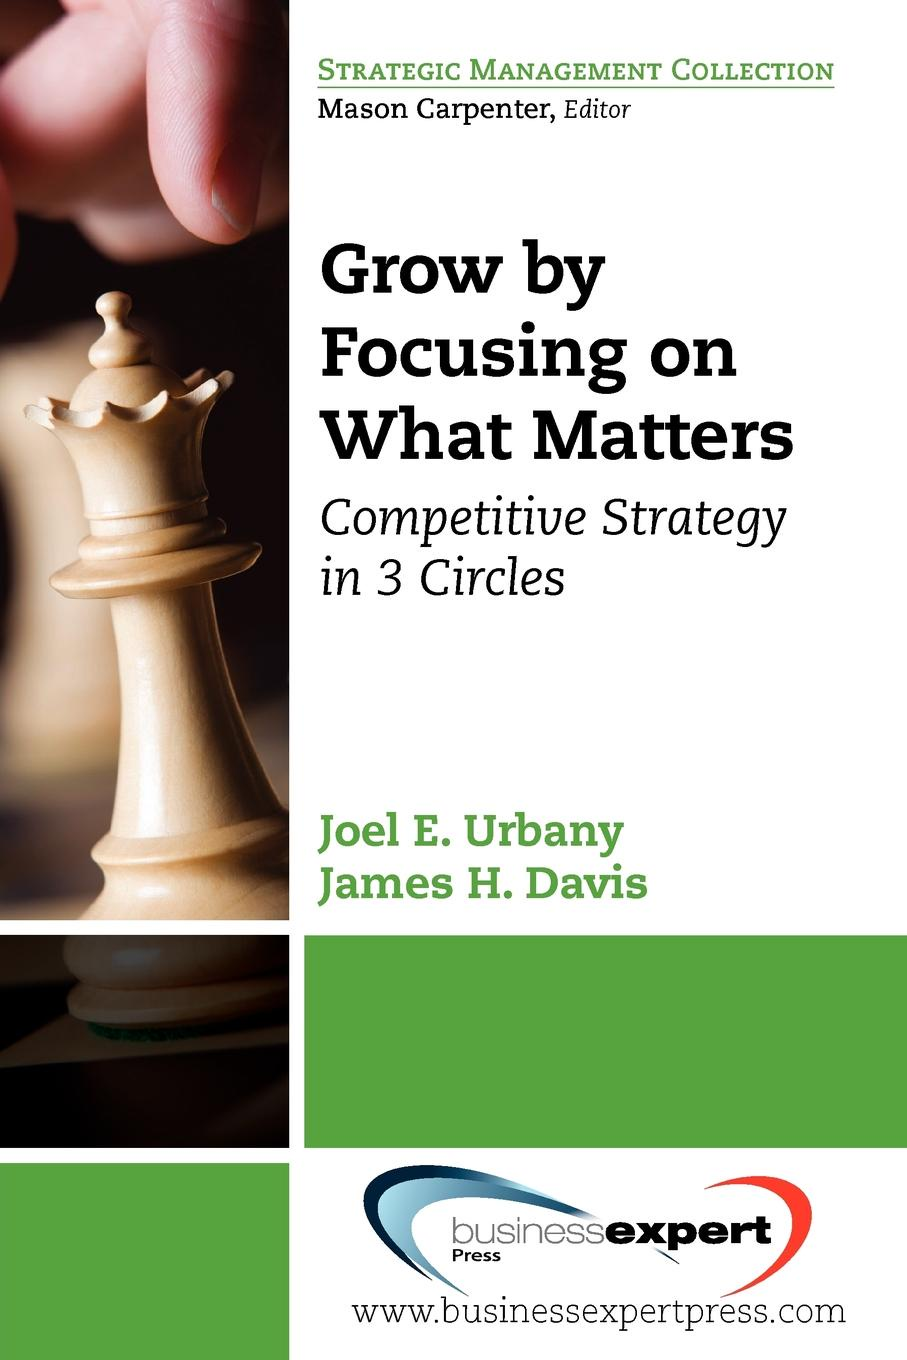 Joel Urbany, H. Davis James, James H. Davis Grow by Focusing on What Matters. Competitive Strategy in 3 Circles peter felten the undergraduate experience focusing institutions on what matters most